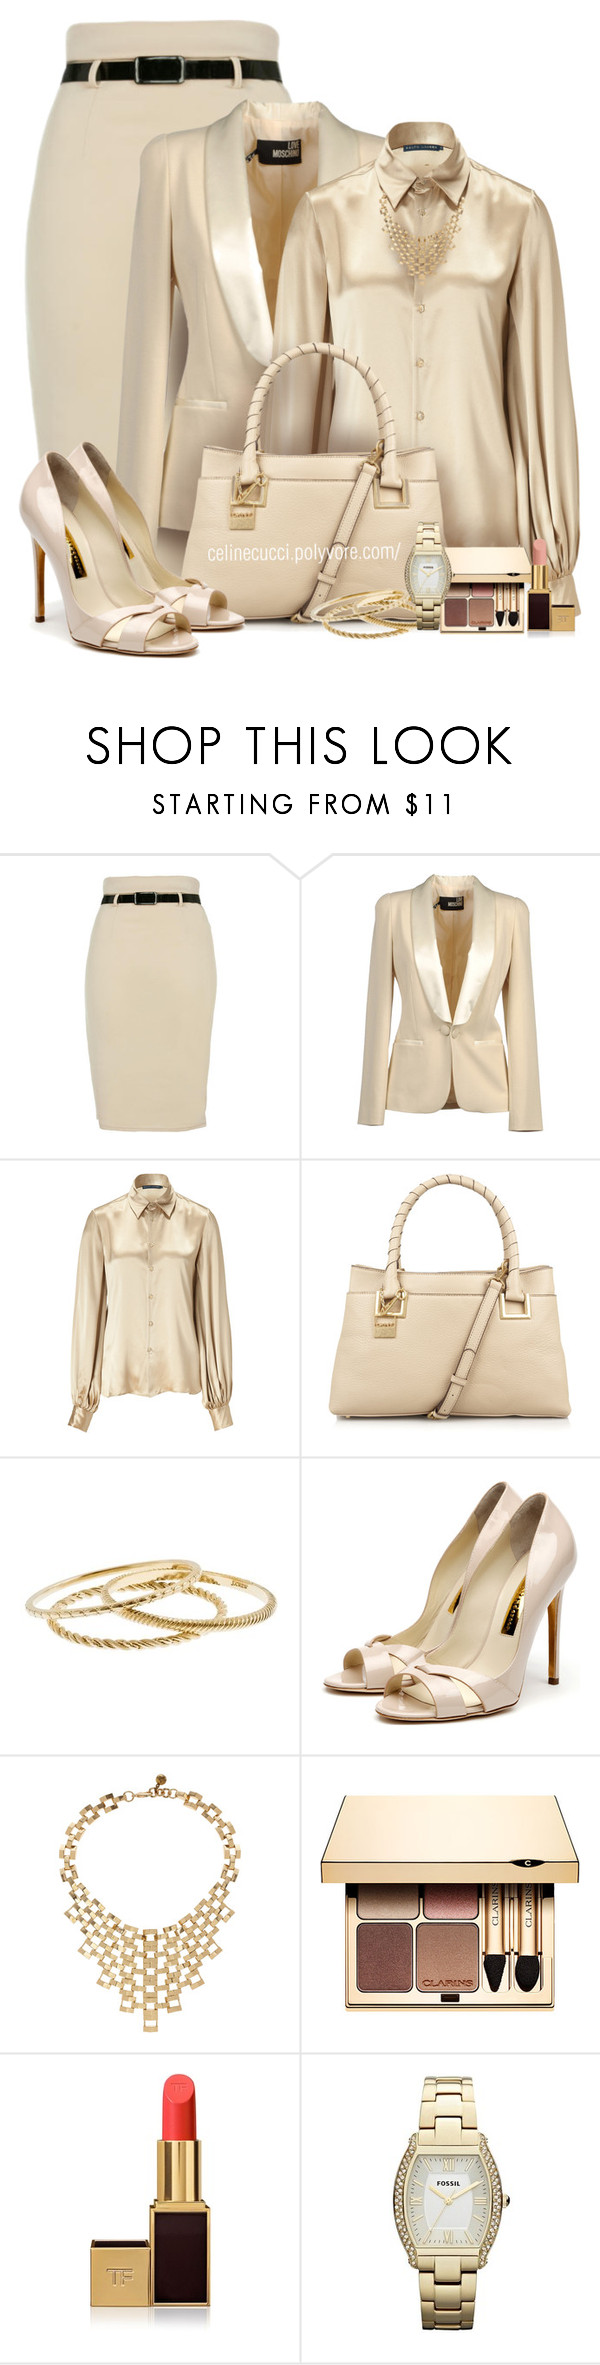 Monochromatic - Beige by celinecucci on Polyvore featuring Polo Ralph Lauren, Love Moschino, Rupert Sanderson, DKNY, FOSSIL, J.Crew, Lulu Frost, Clarins and Tom Ford